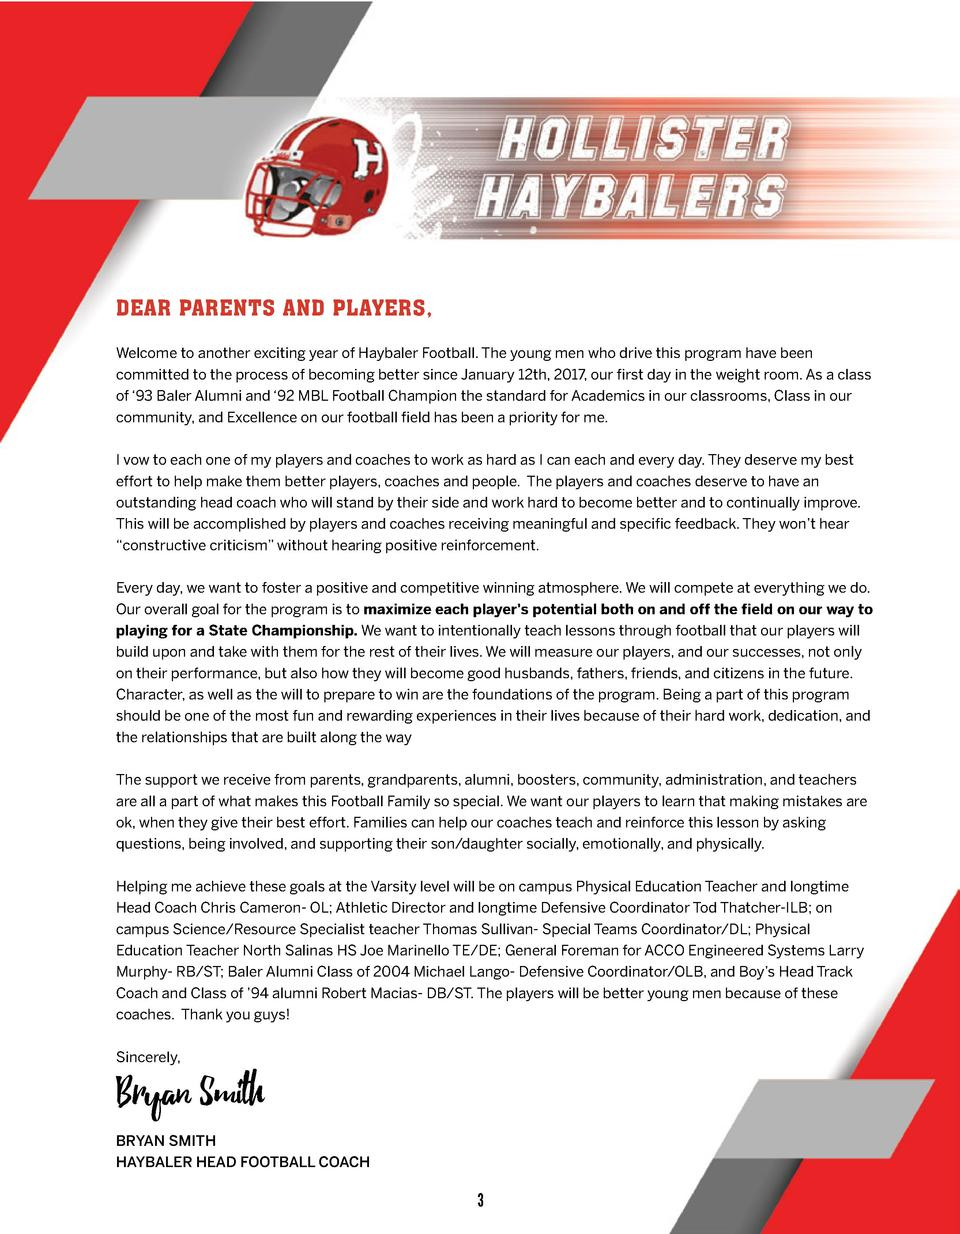 DEAR PARENTS AND PLAYERS, Welcome to another exciting year of Haybaler Football. The young men who drive this program have...